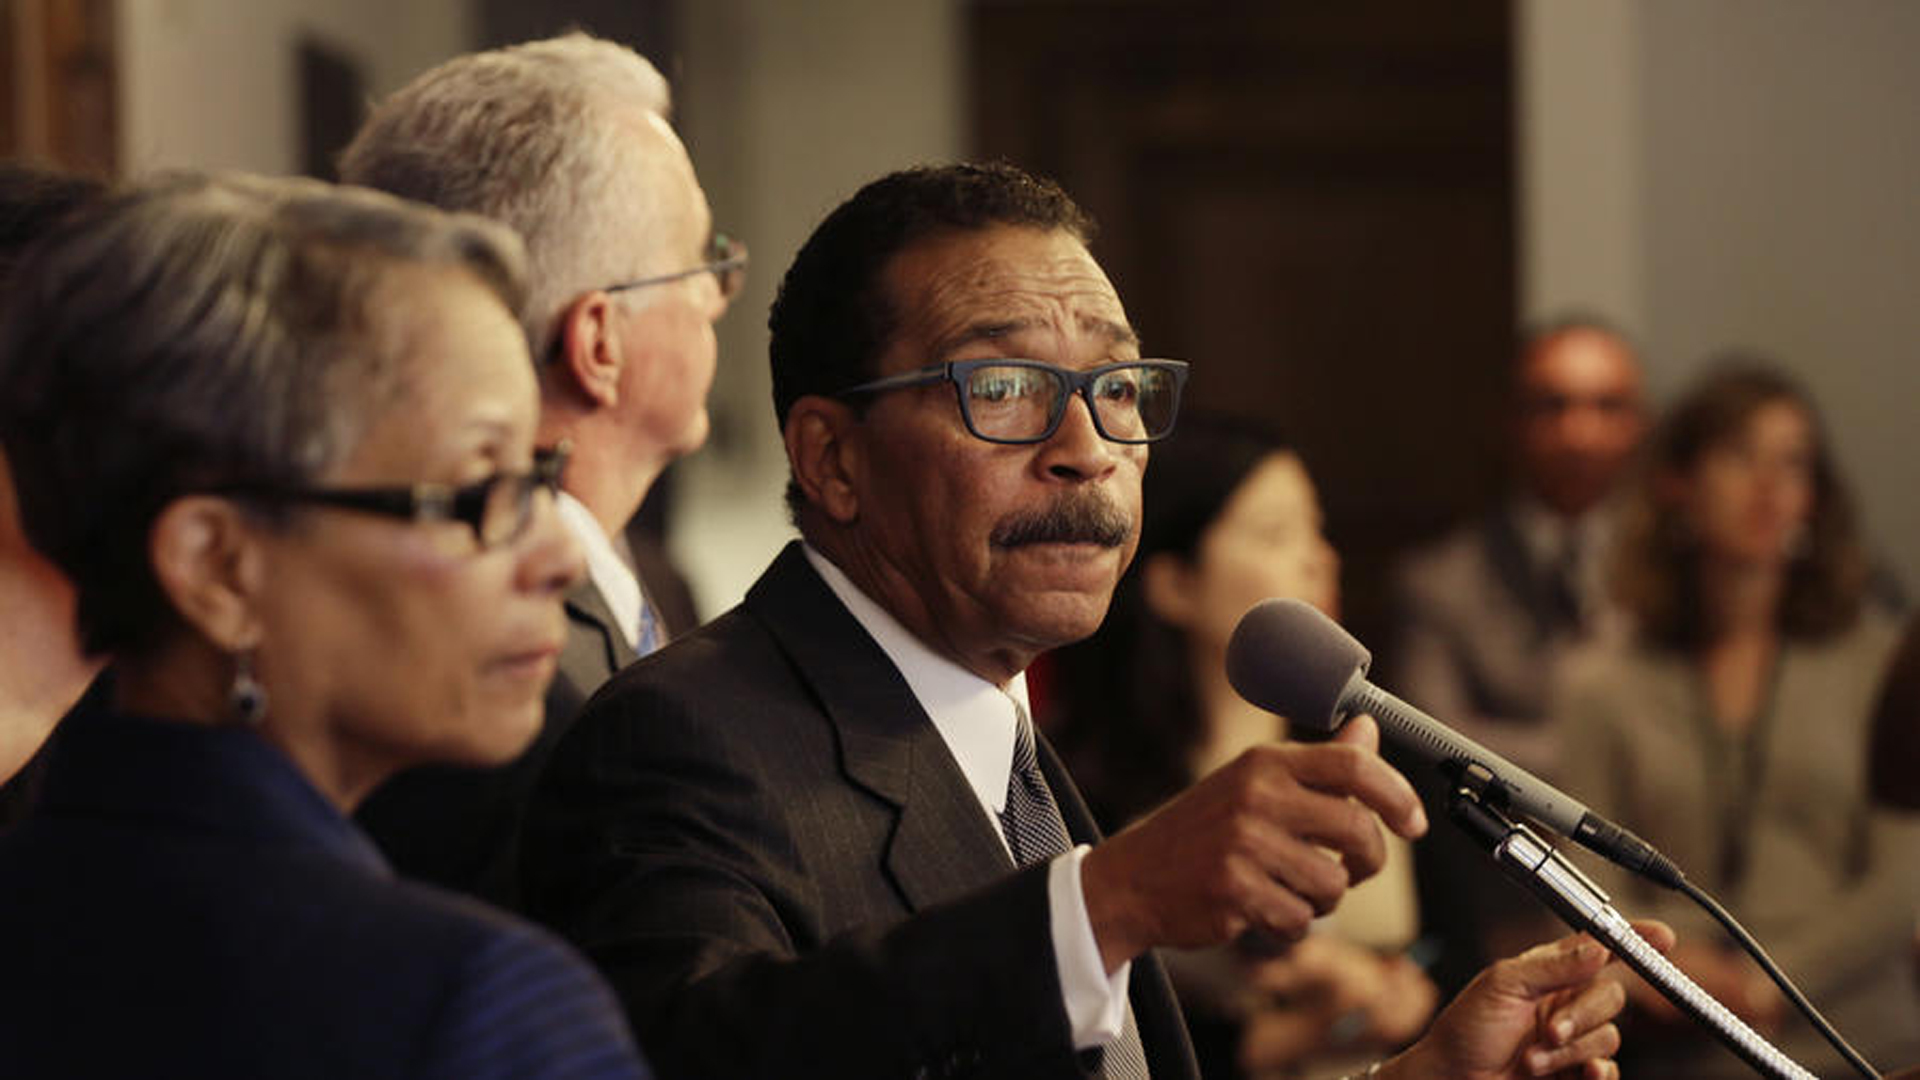 Los Angeles City Council President Herb Wesson appears at a press conference in May 2016. (Credit: Irfan Khan / Los Angeles Times)